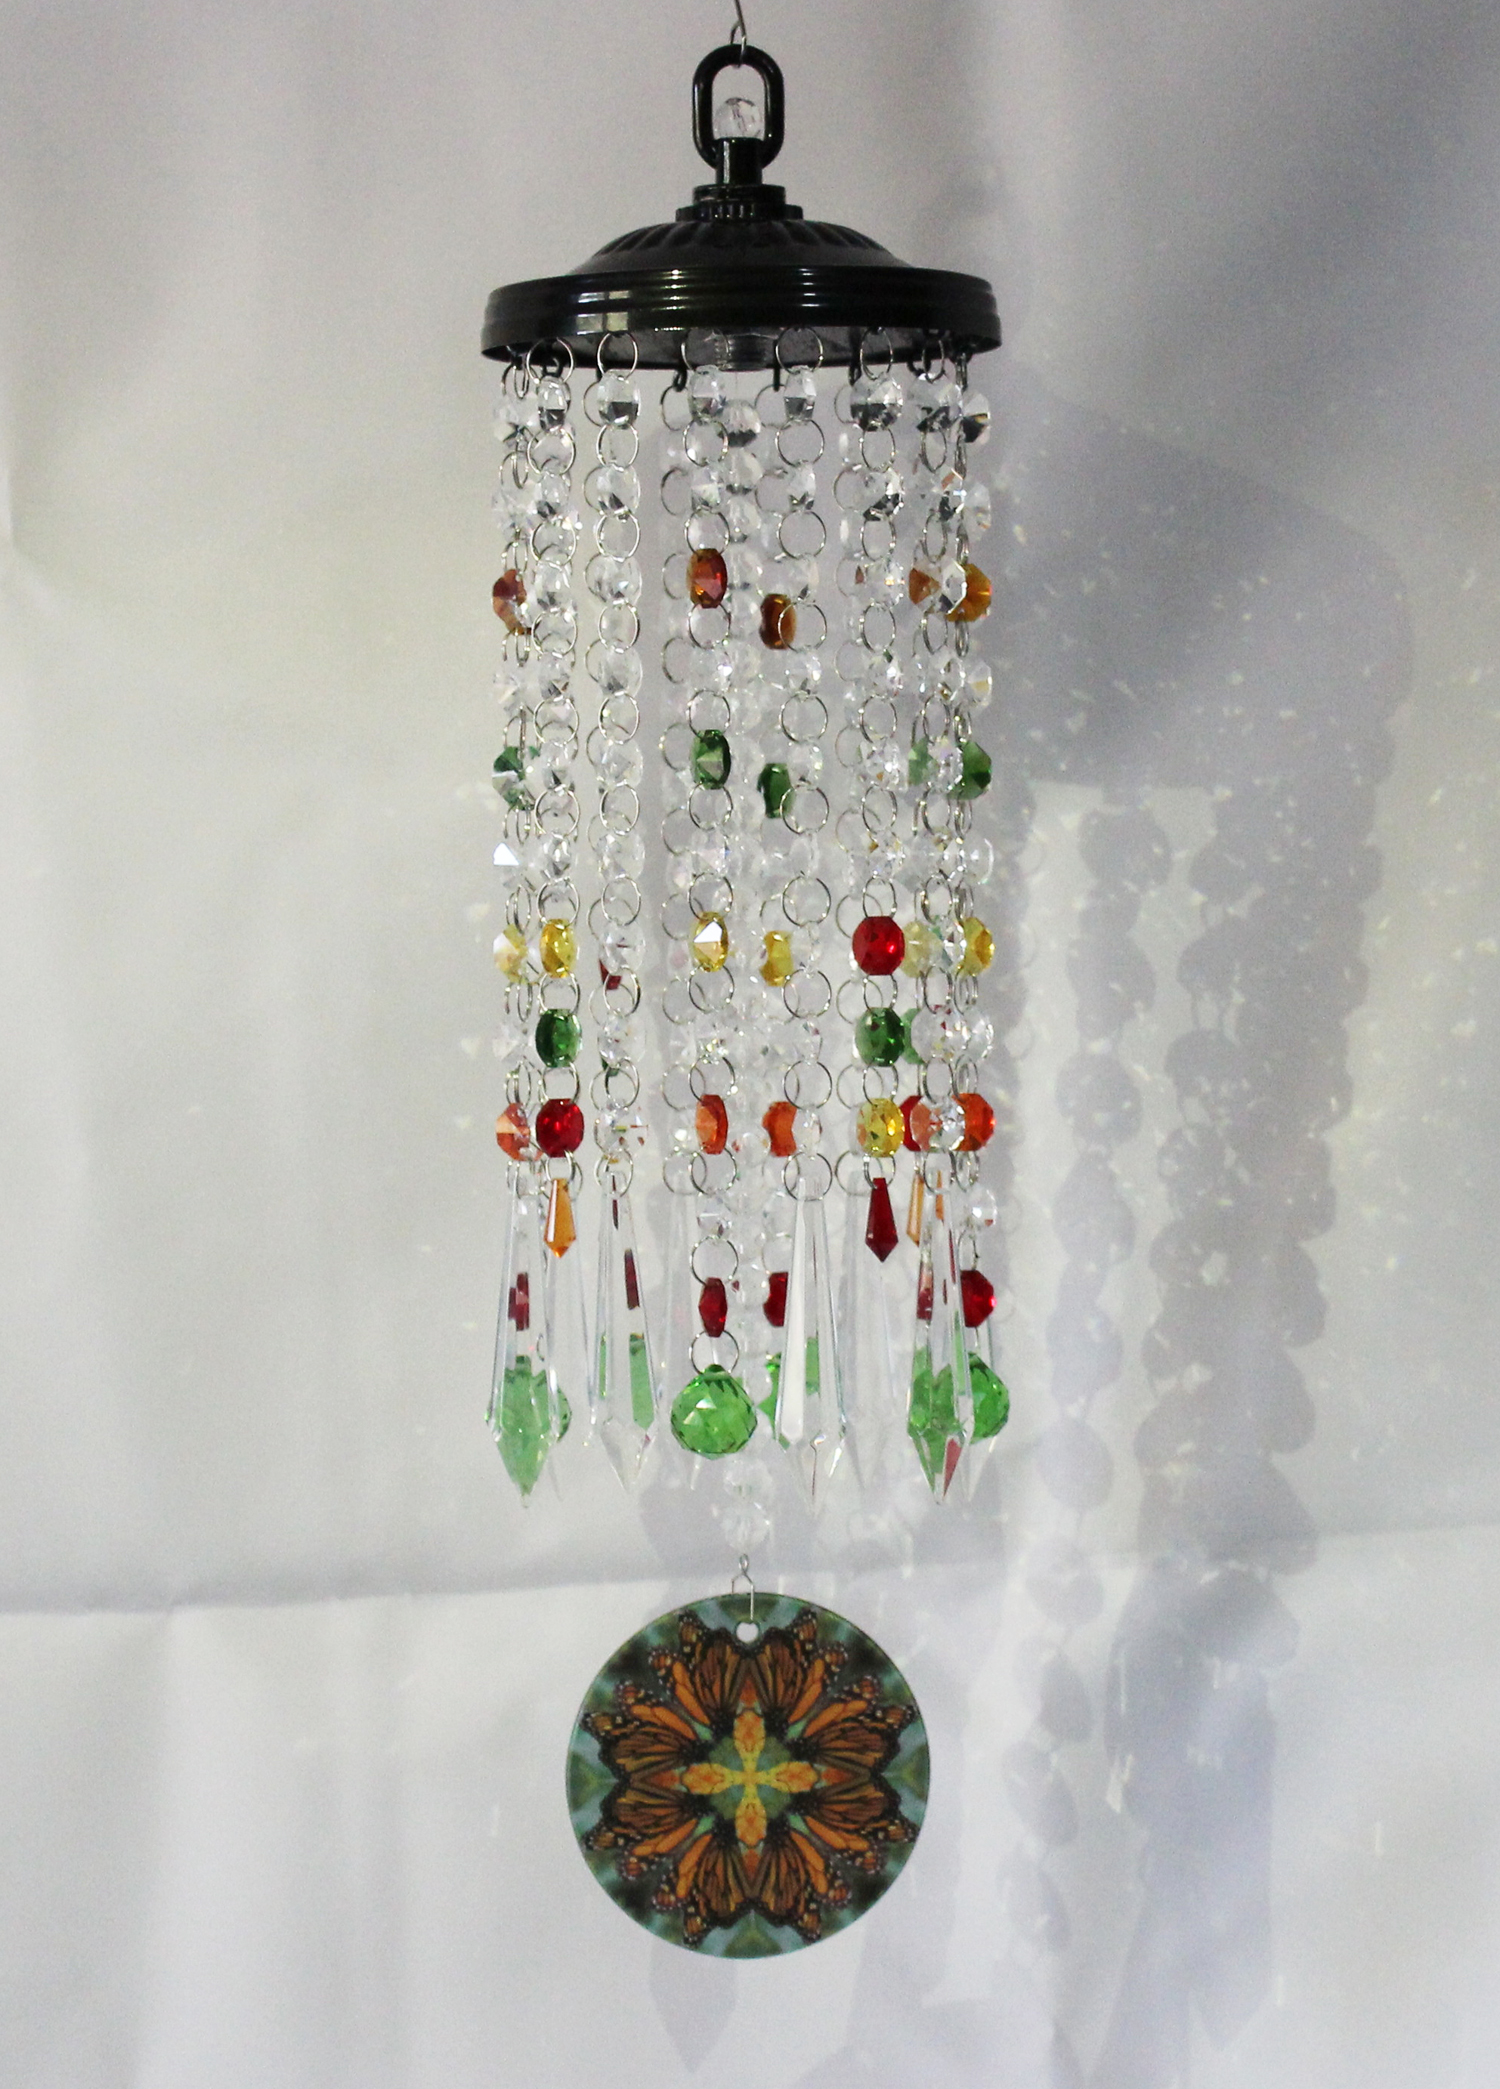 A Crystal Suncatcher Chandelier With A Glass Monarch Butterfly Mandala Centerpiece